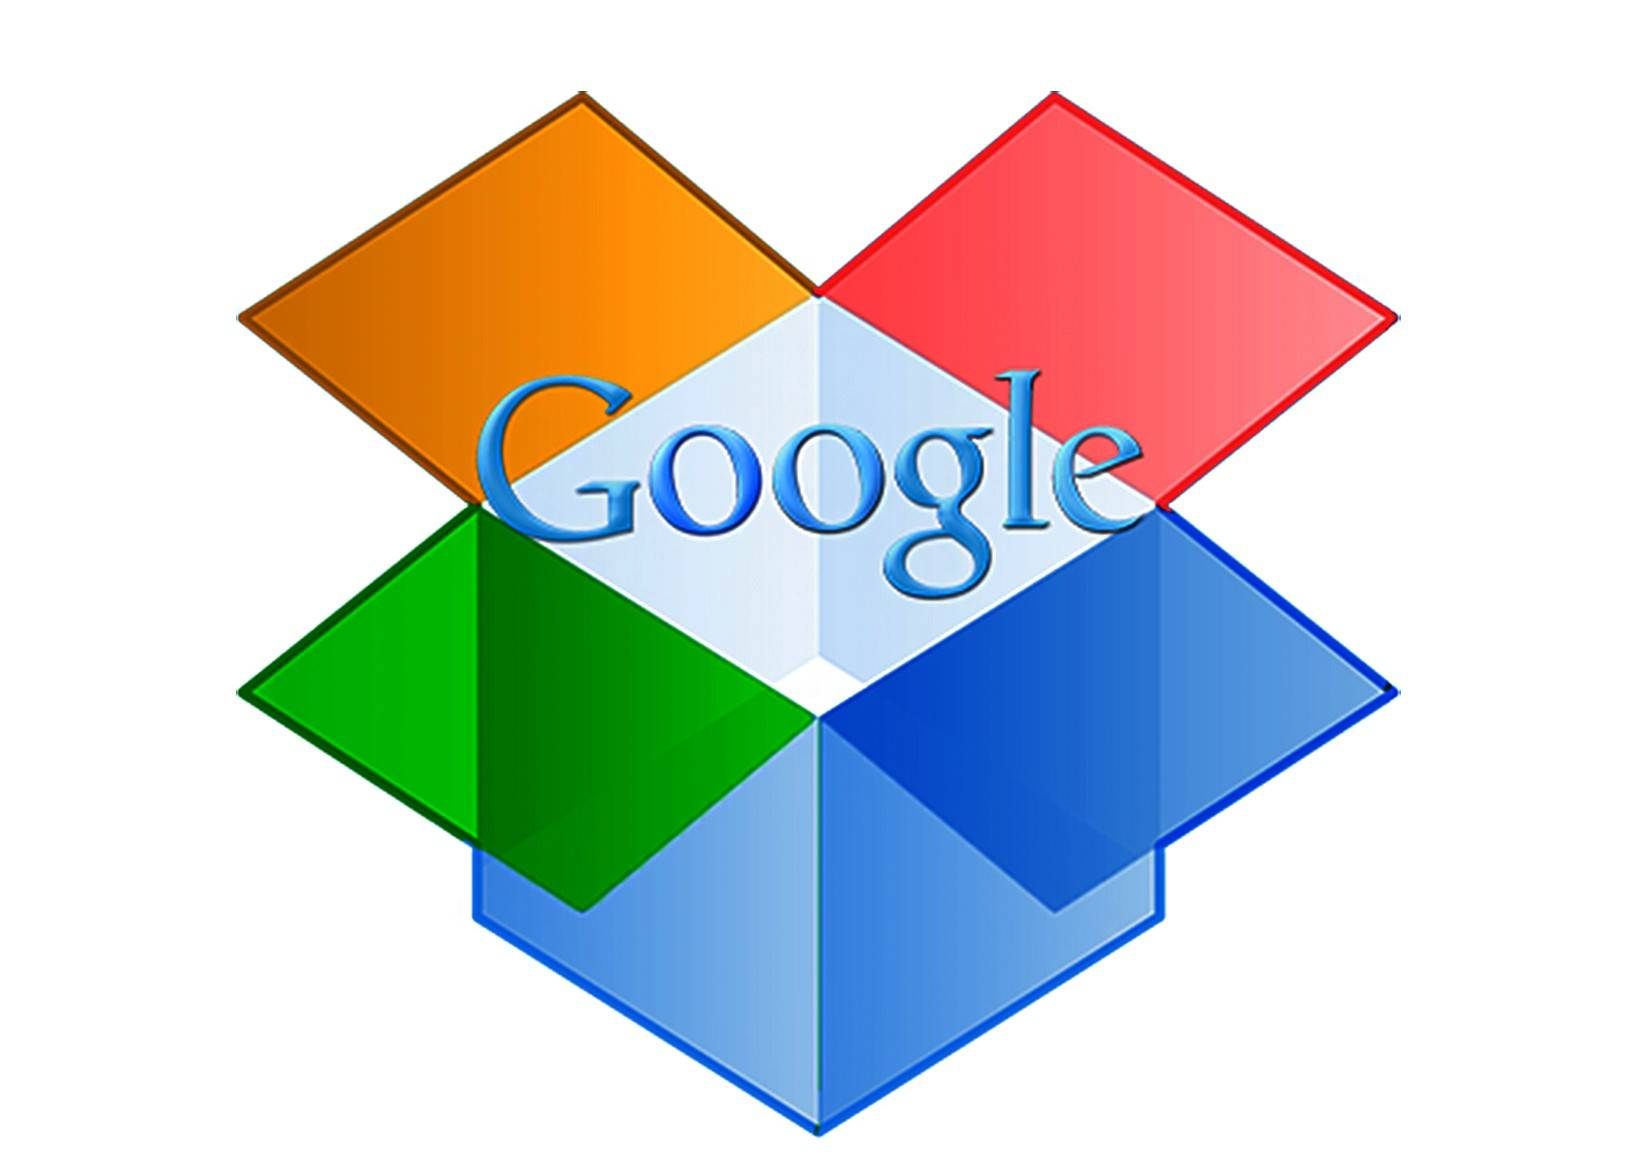 Why Google should buy Dropbox. Because it has the potential to create a true Internet of You.